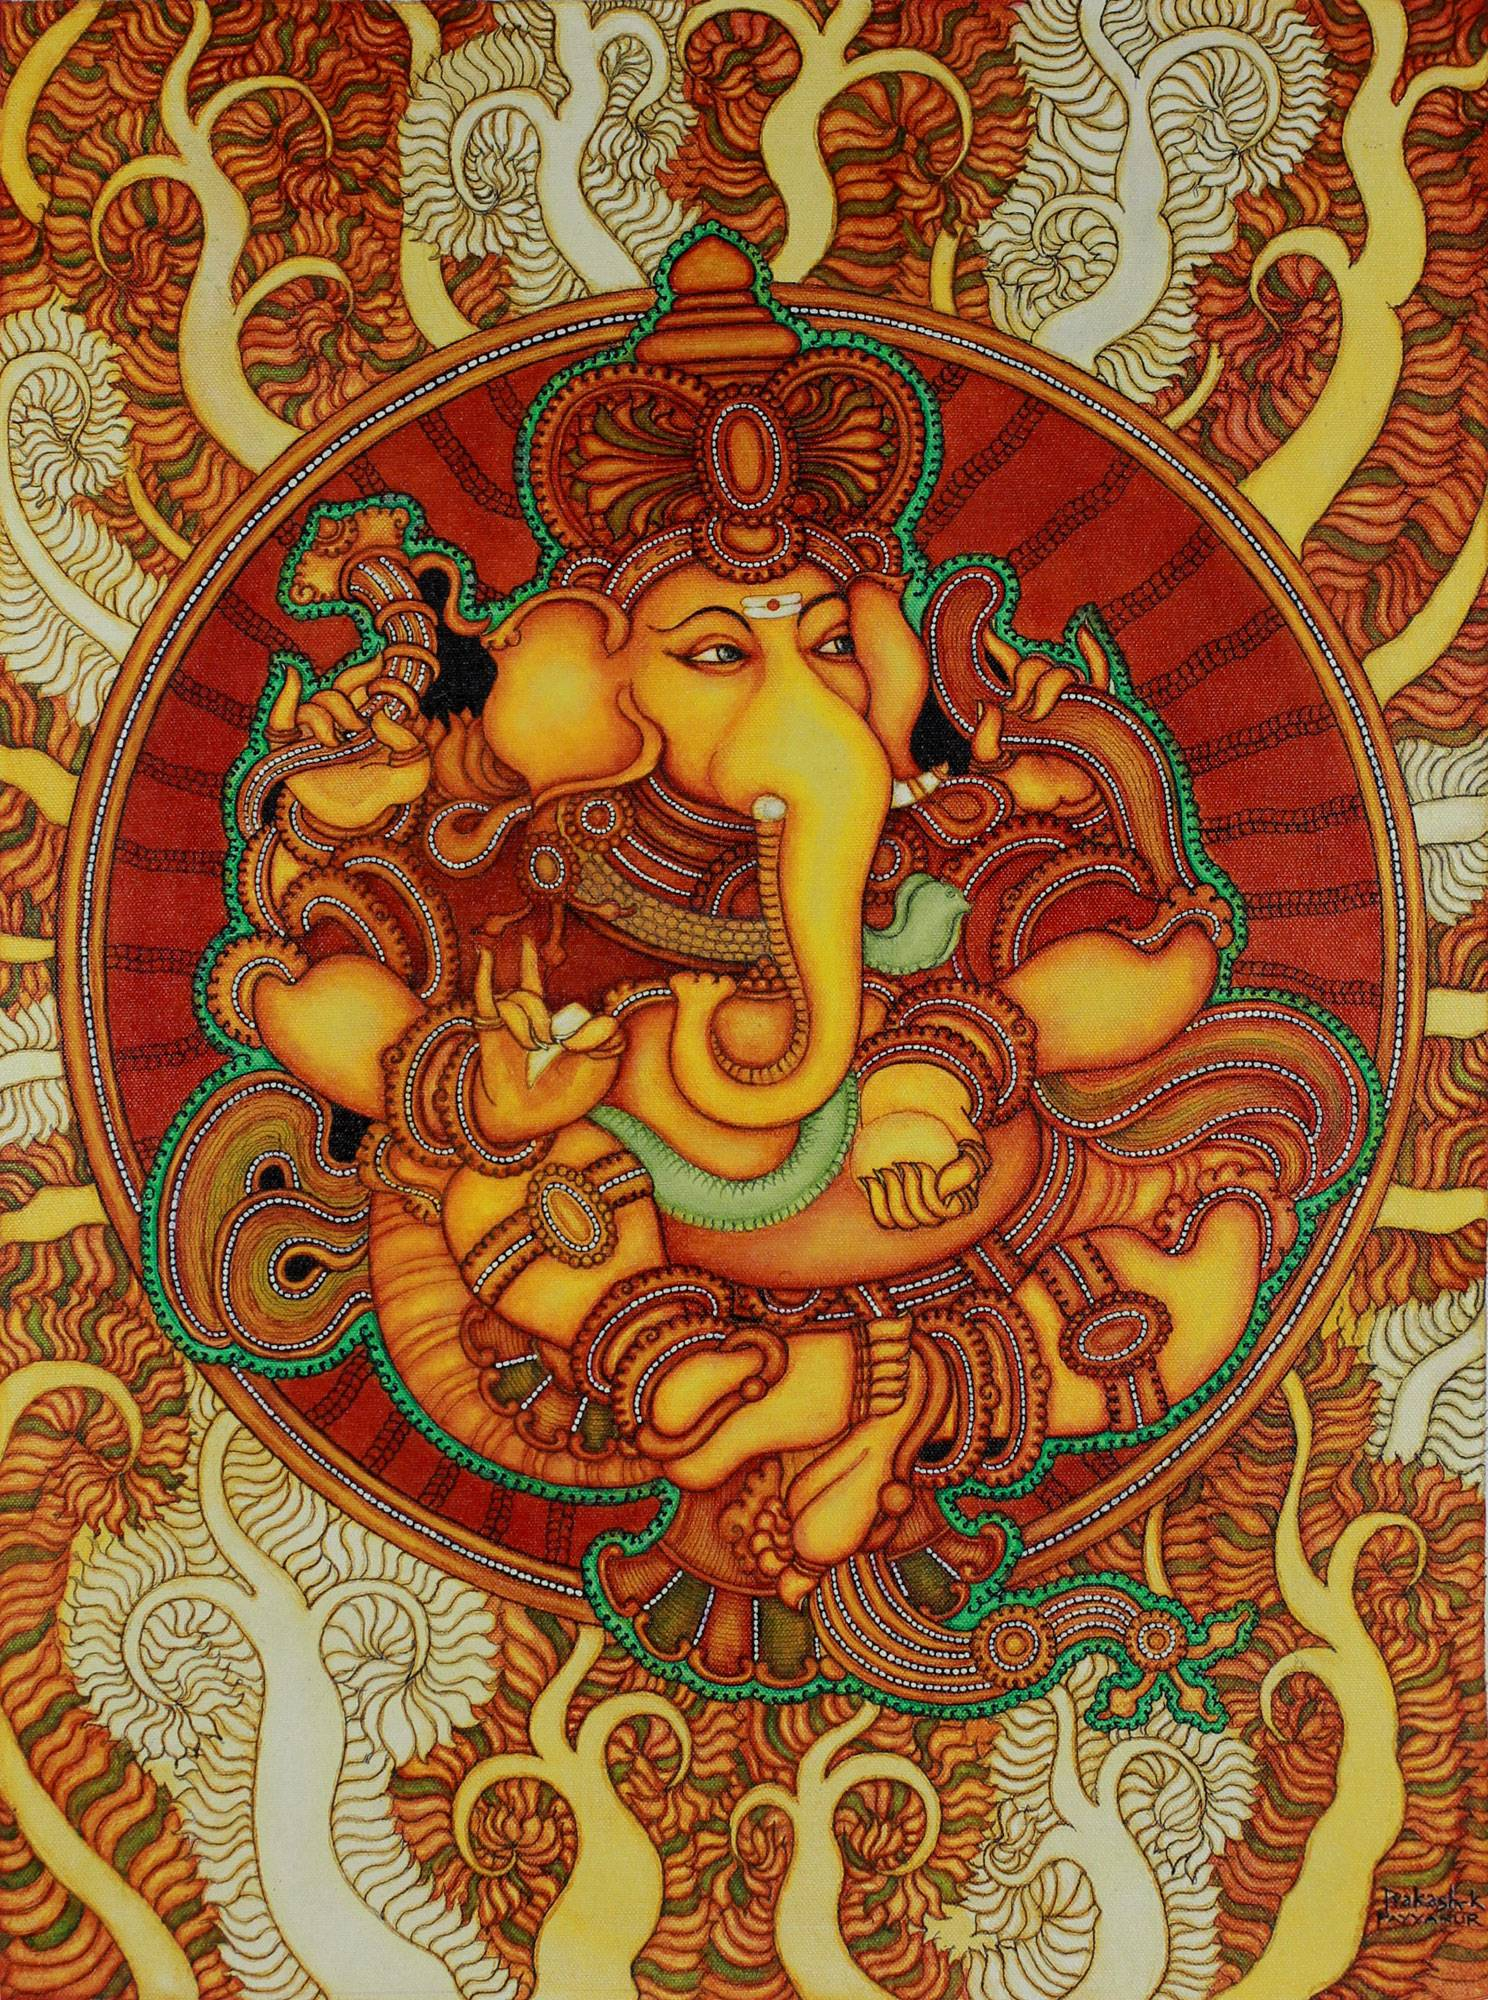 Unicef uk market replica painting kerala mural art for Mural art of ganesha